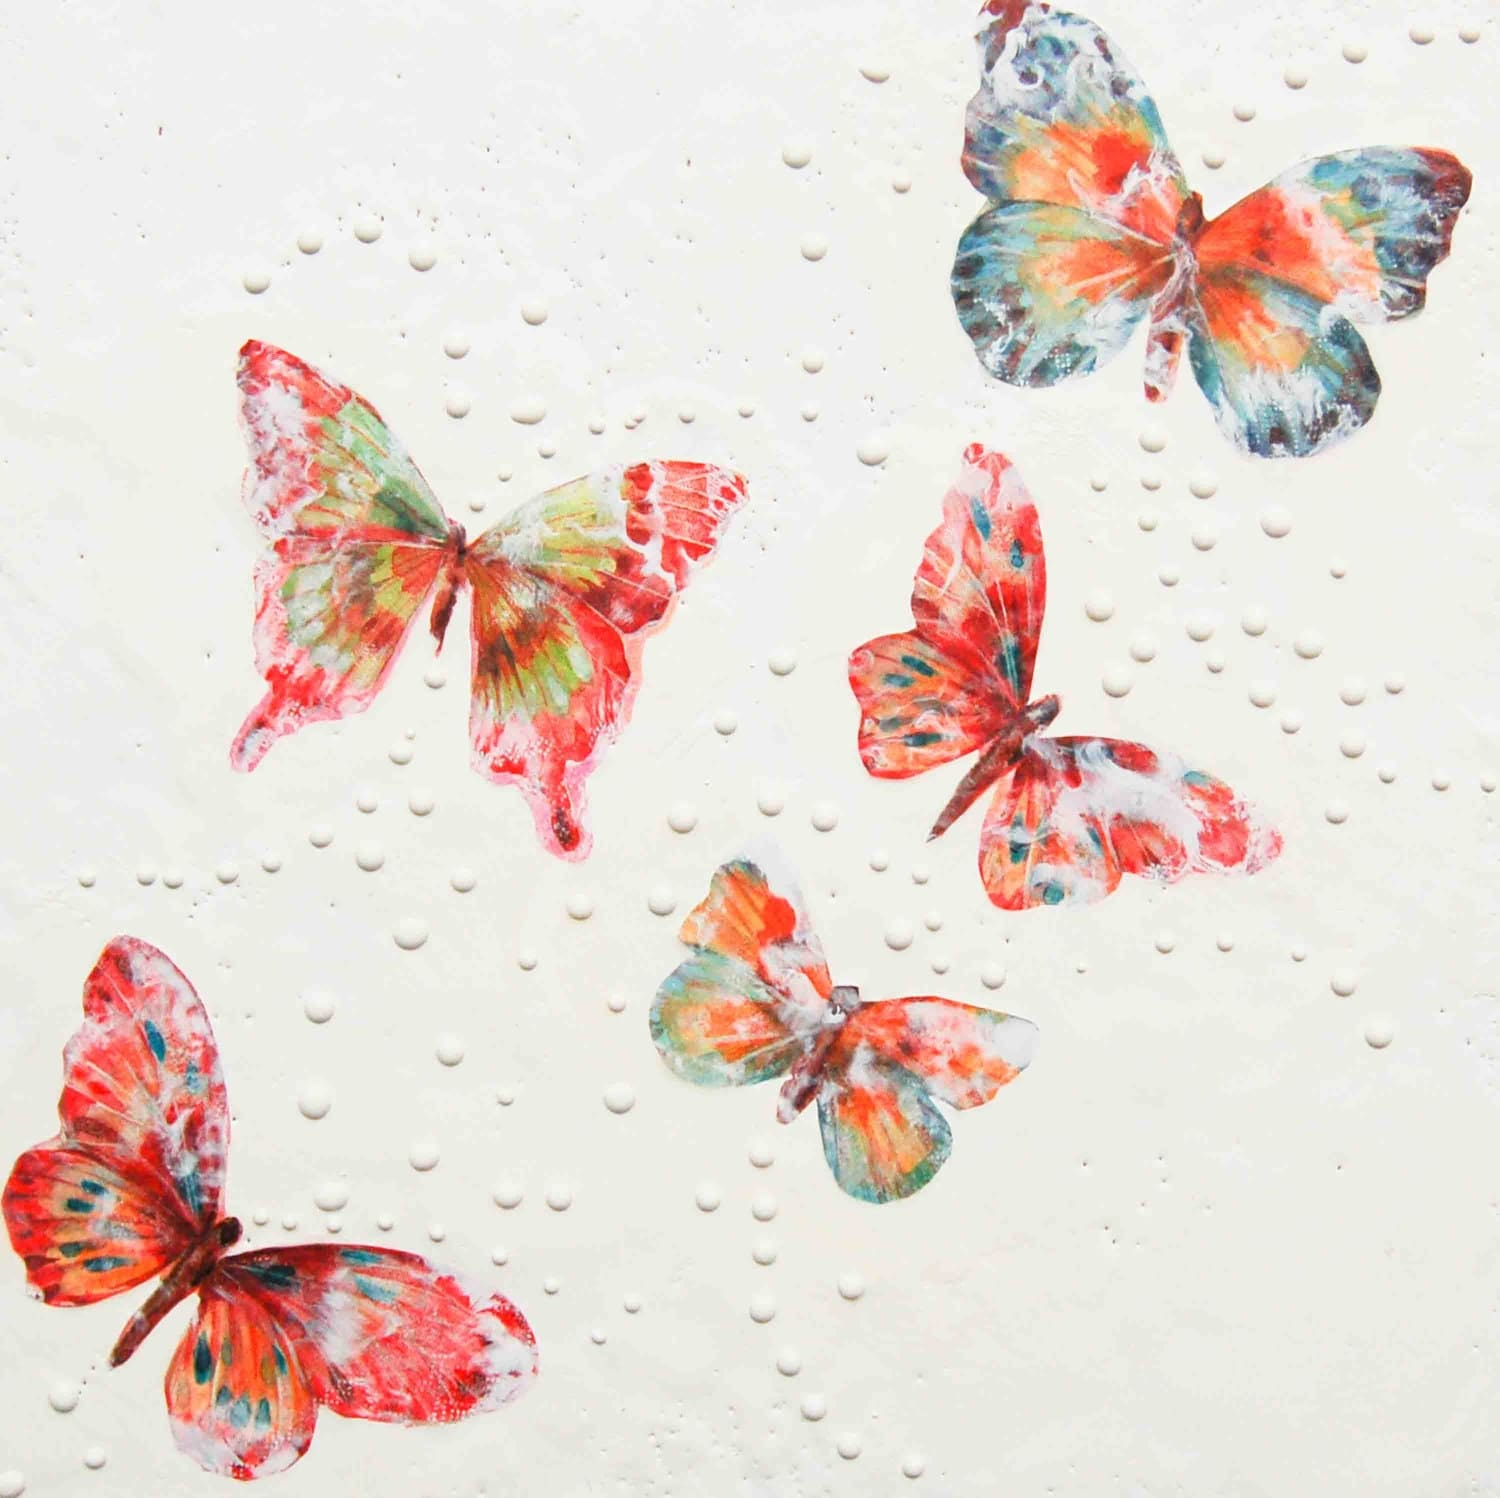 BUTTERFLY Art Print Mixed Media Art Collage by susannajarian - photo#13